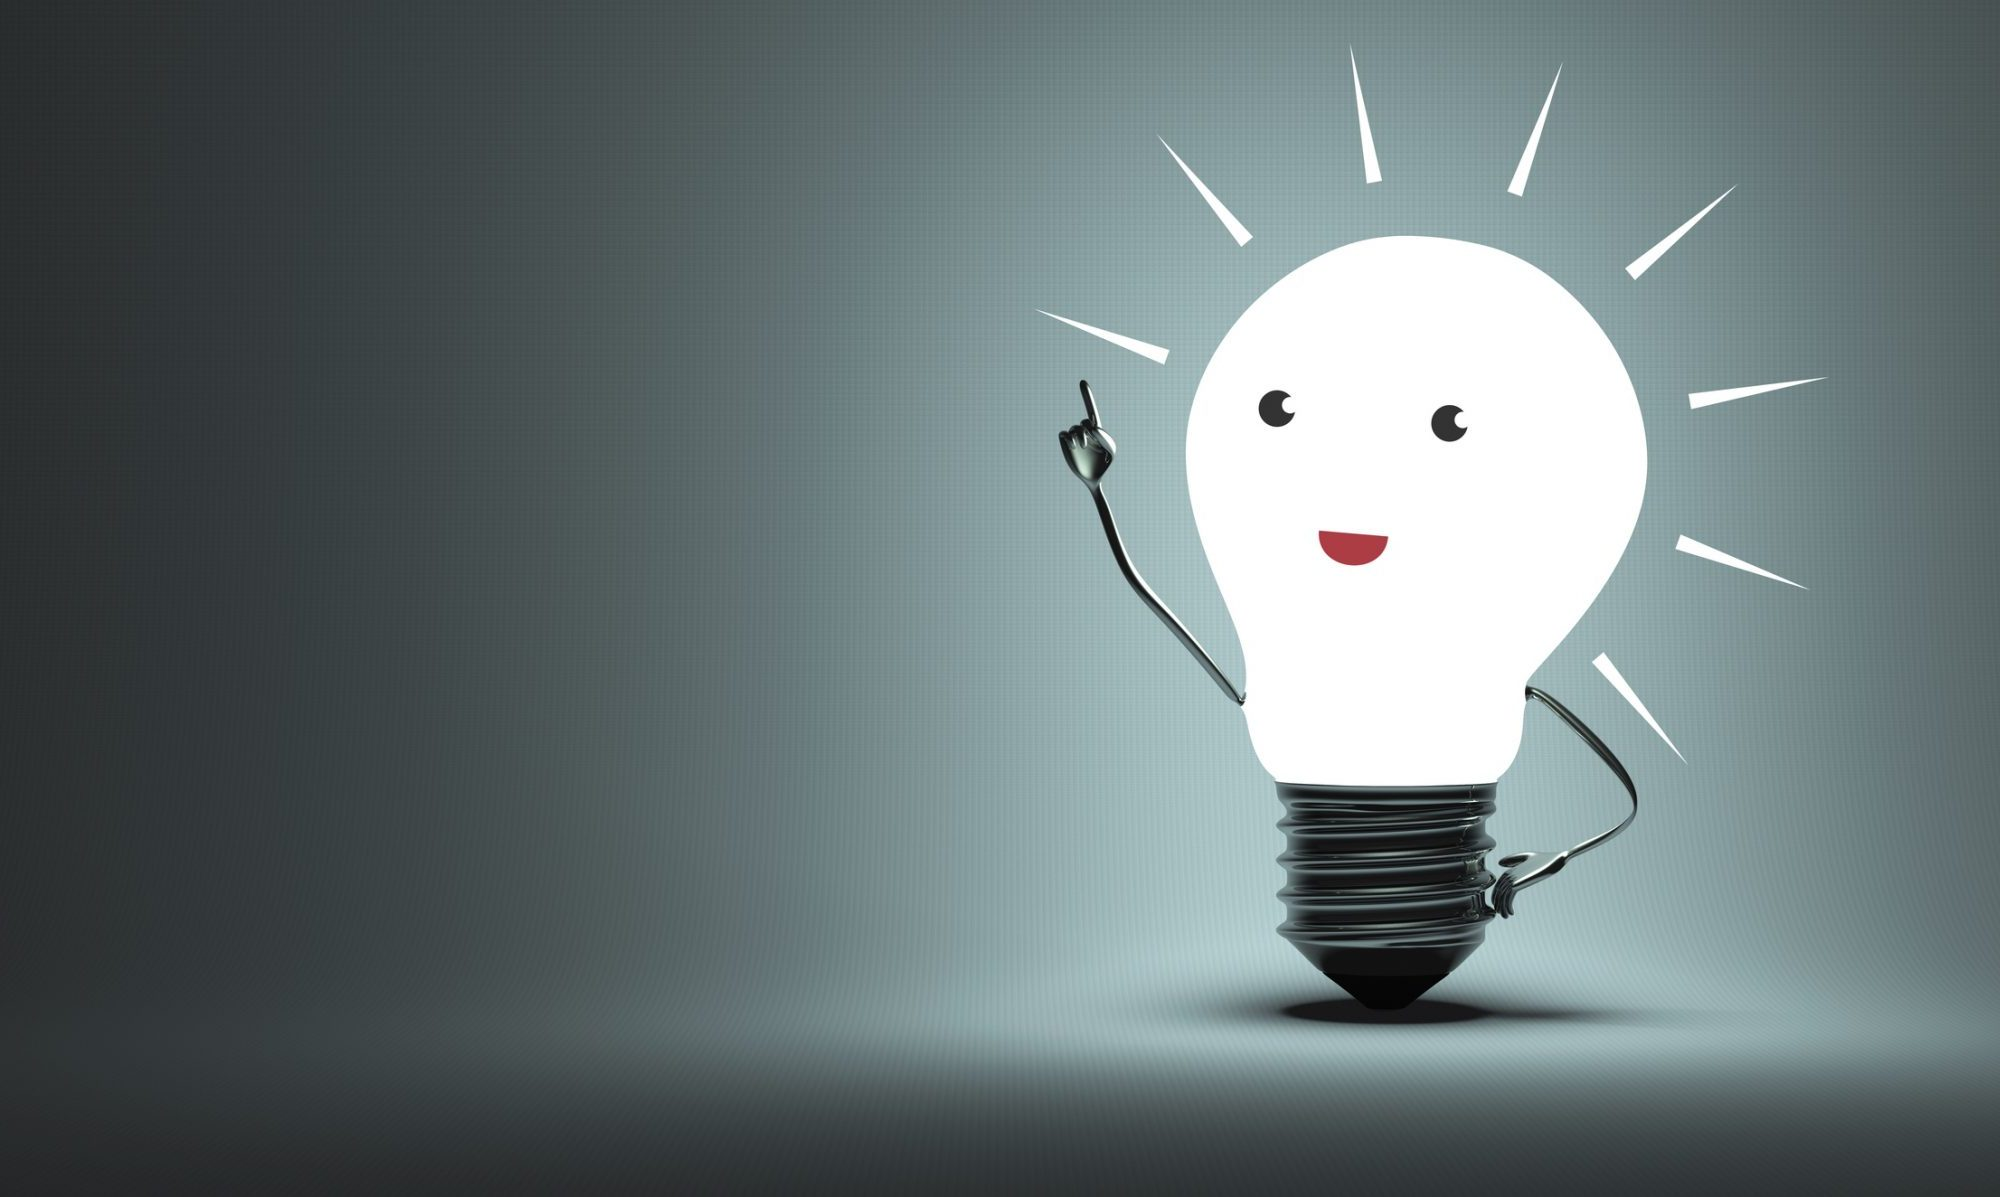 Here is a lightbulb glowing white with cartoon facial features and a metallic arm pointing upright; this is symbolic of innovation and ideas.